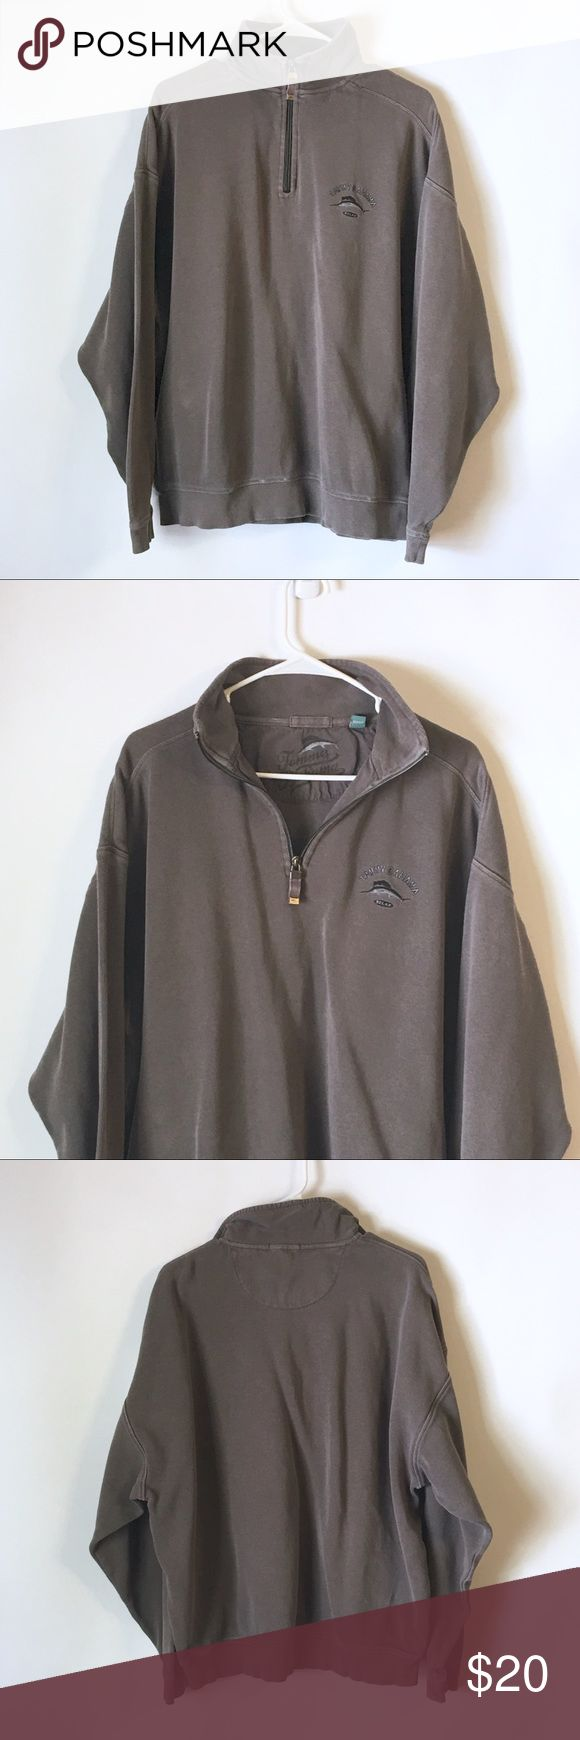 Rare Tommy Bahama Relax Men's Half Zip Sweater Brand:TommyBahama Relax Item name: Men's Half Zip Sweater   Color: Grey Condition: This is a pre-owned item. It is in in excellent used condition with no stains, rips, holes, etc. Comes from a smoke free household. Size: Men's XL Measurements: Pit to Pit - 25 inches Shoulder to bottom - 26.5 inches Tommy Bahama Sweaters Zip Up